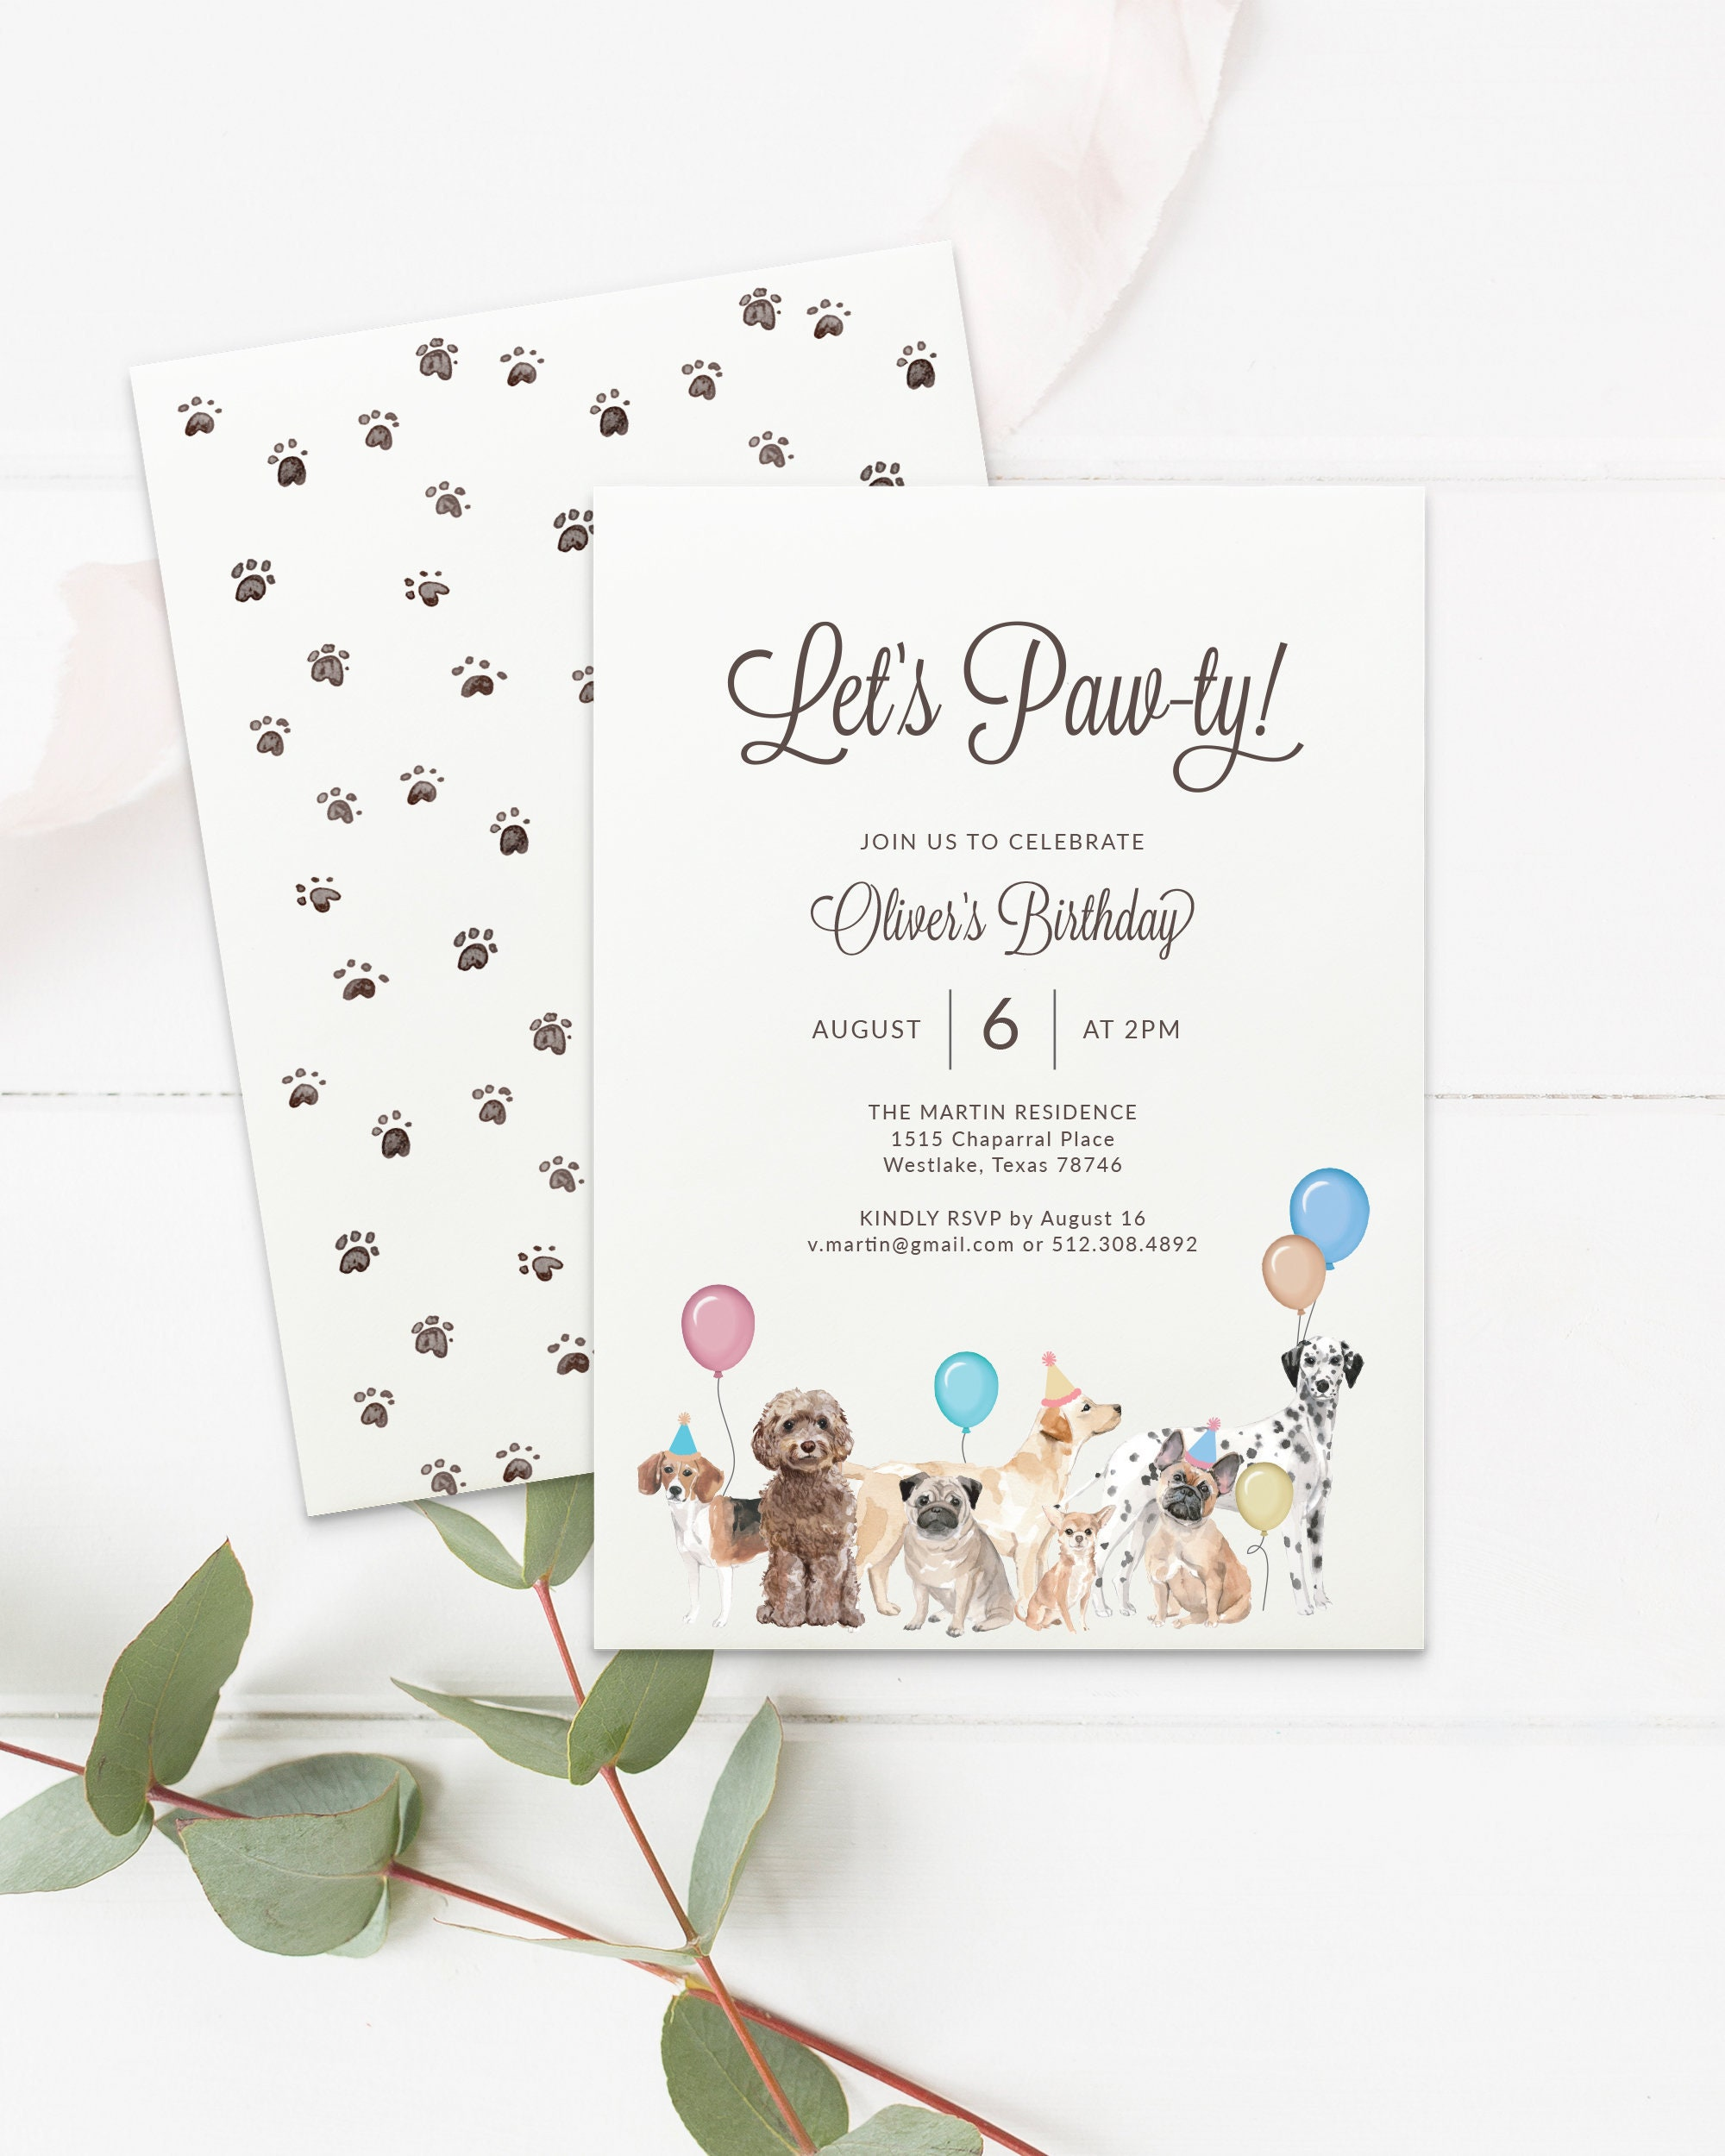 Printable Dog Party Invitation Template for Birthday, Party, or Shower.  Custom Instant Download with Templett. Custom Wording Let's Paw ty